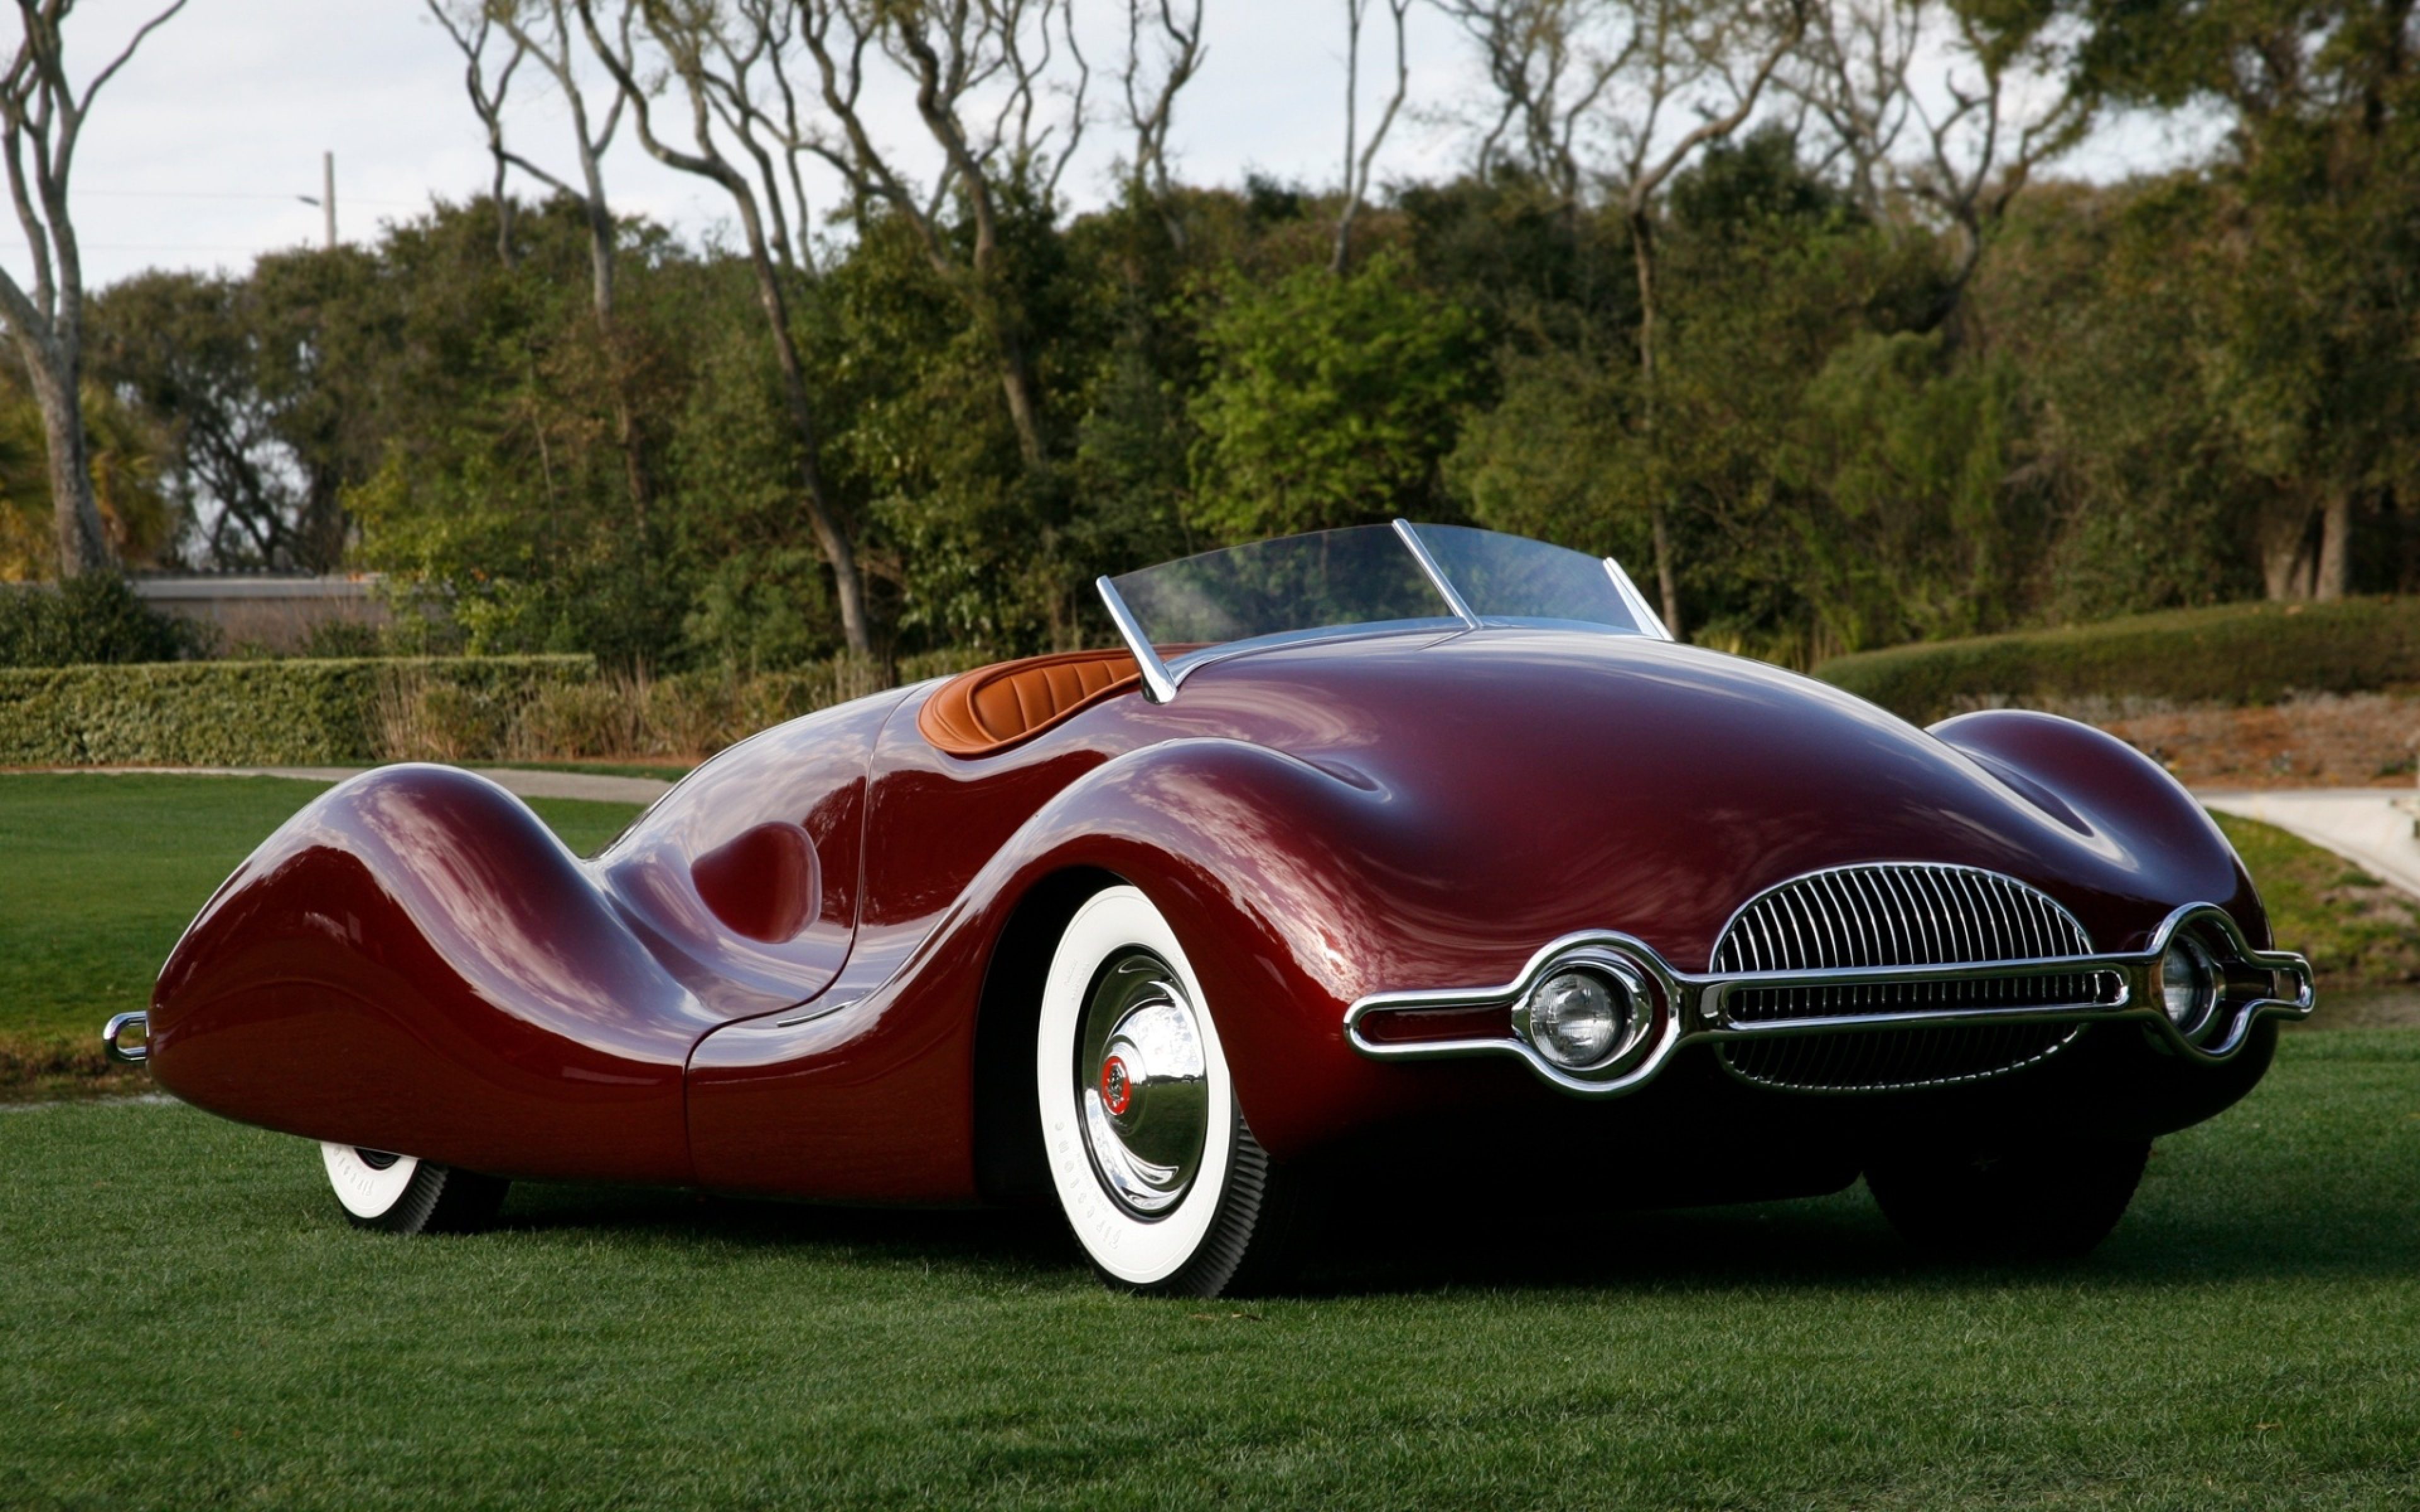 Image: Retro, streamliner, 1949, burgundy